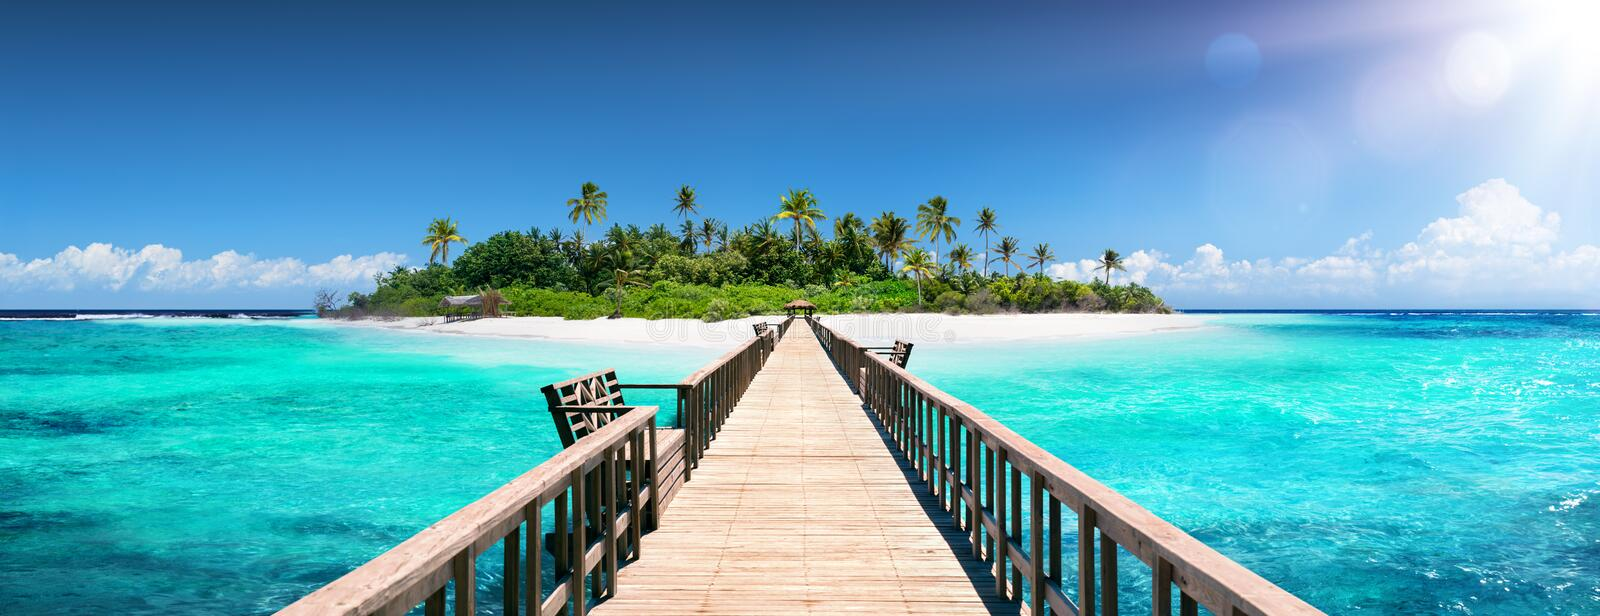 Pier For Paradise Island - Tropical Destination stock image